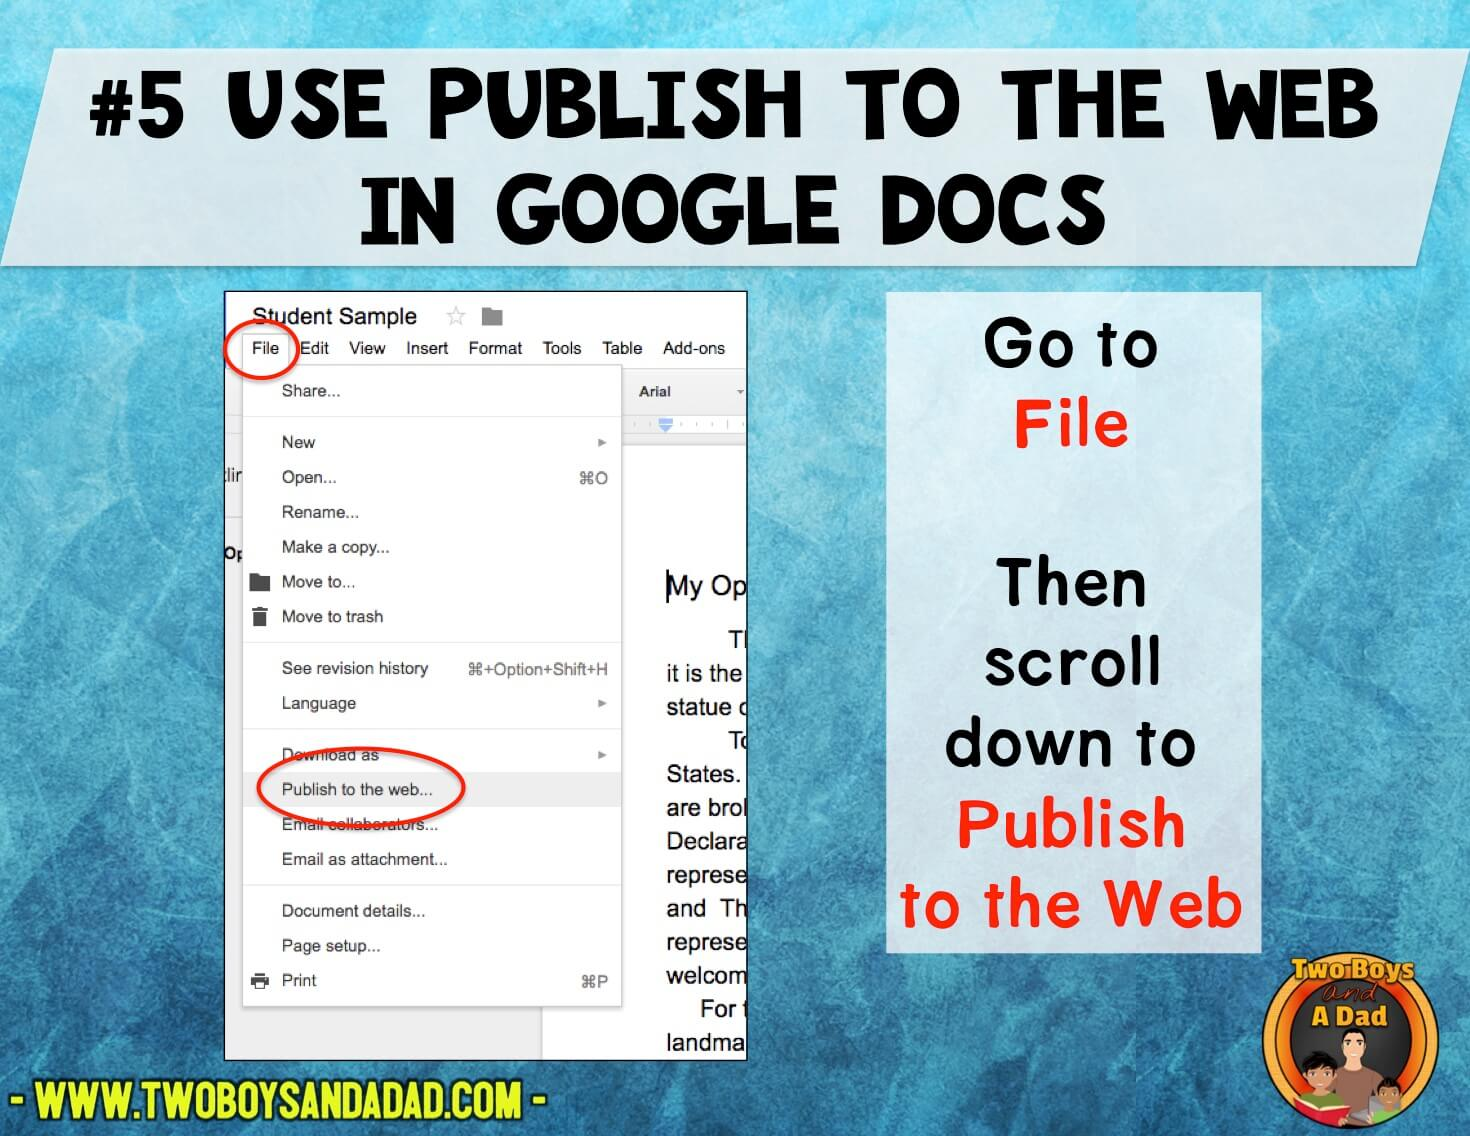 Use publish to the web